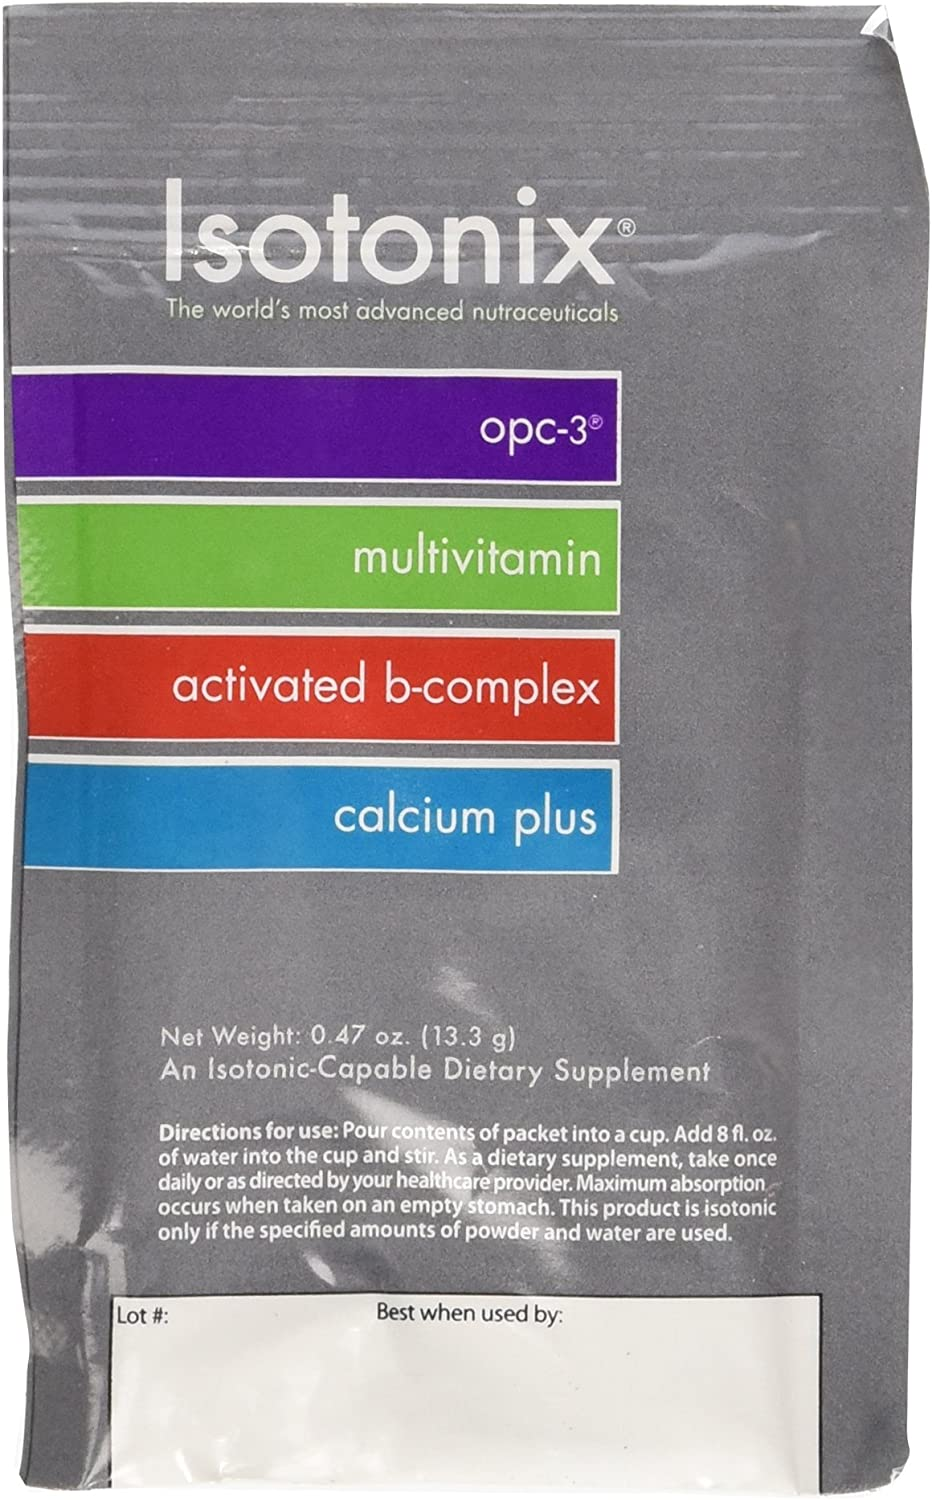 Isotonix Daily Essentials Packets 0.47 oz pack of 30